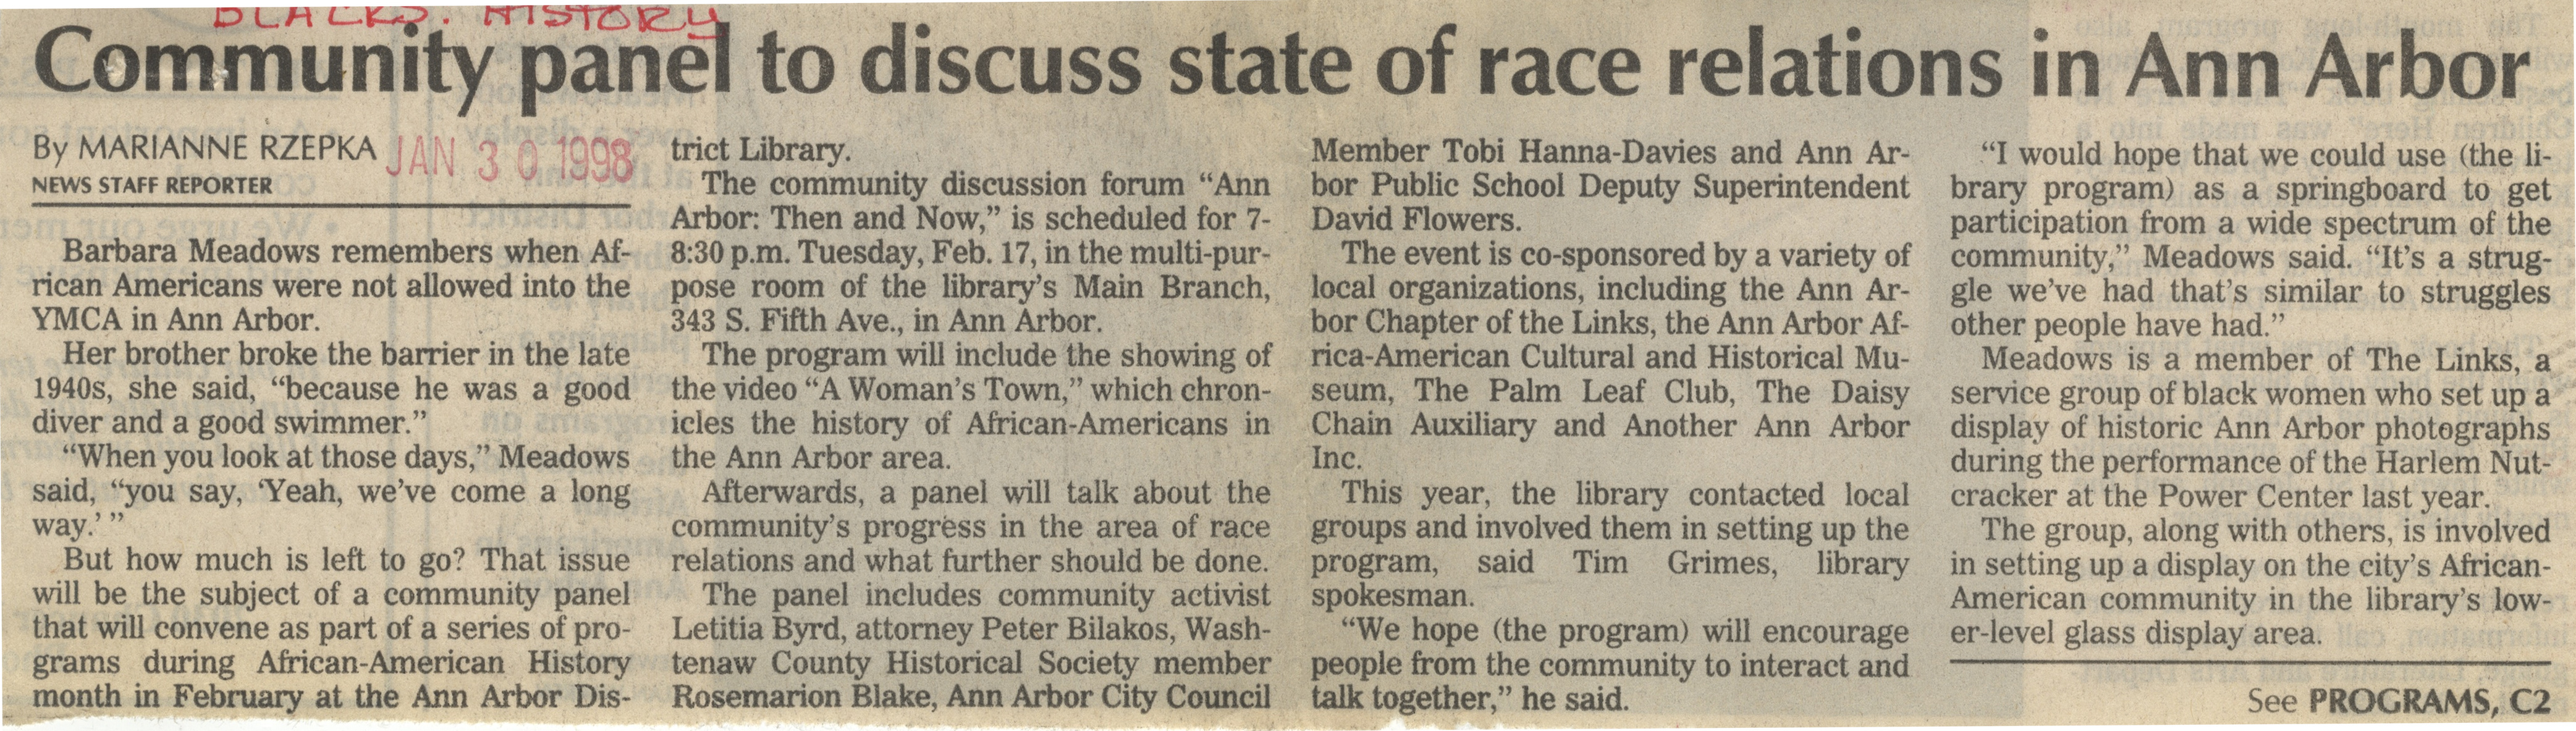 Community Panel To Discuss State Of Race Relations In Ann Arbor image